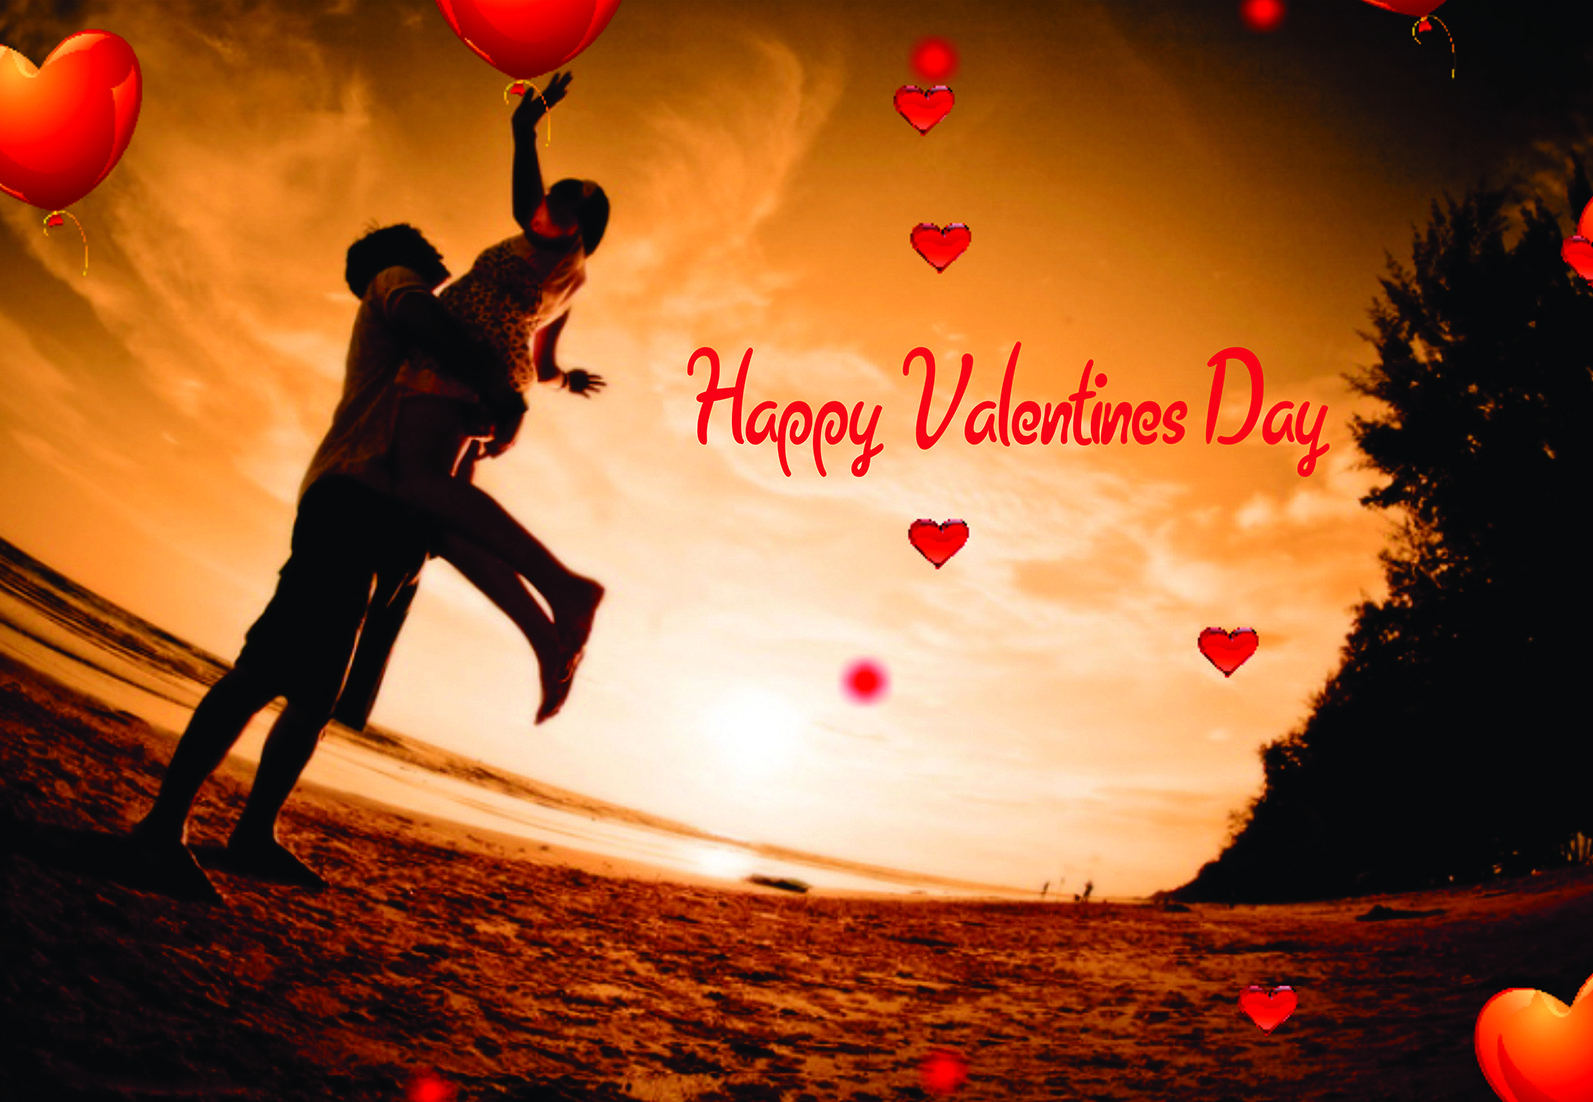 cute Love couple Hd Wallpaper For Mobile : Valentine s Day HD Wallpaper